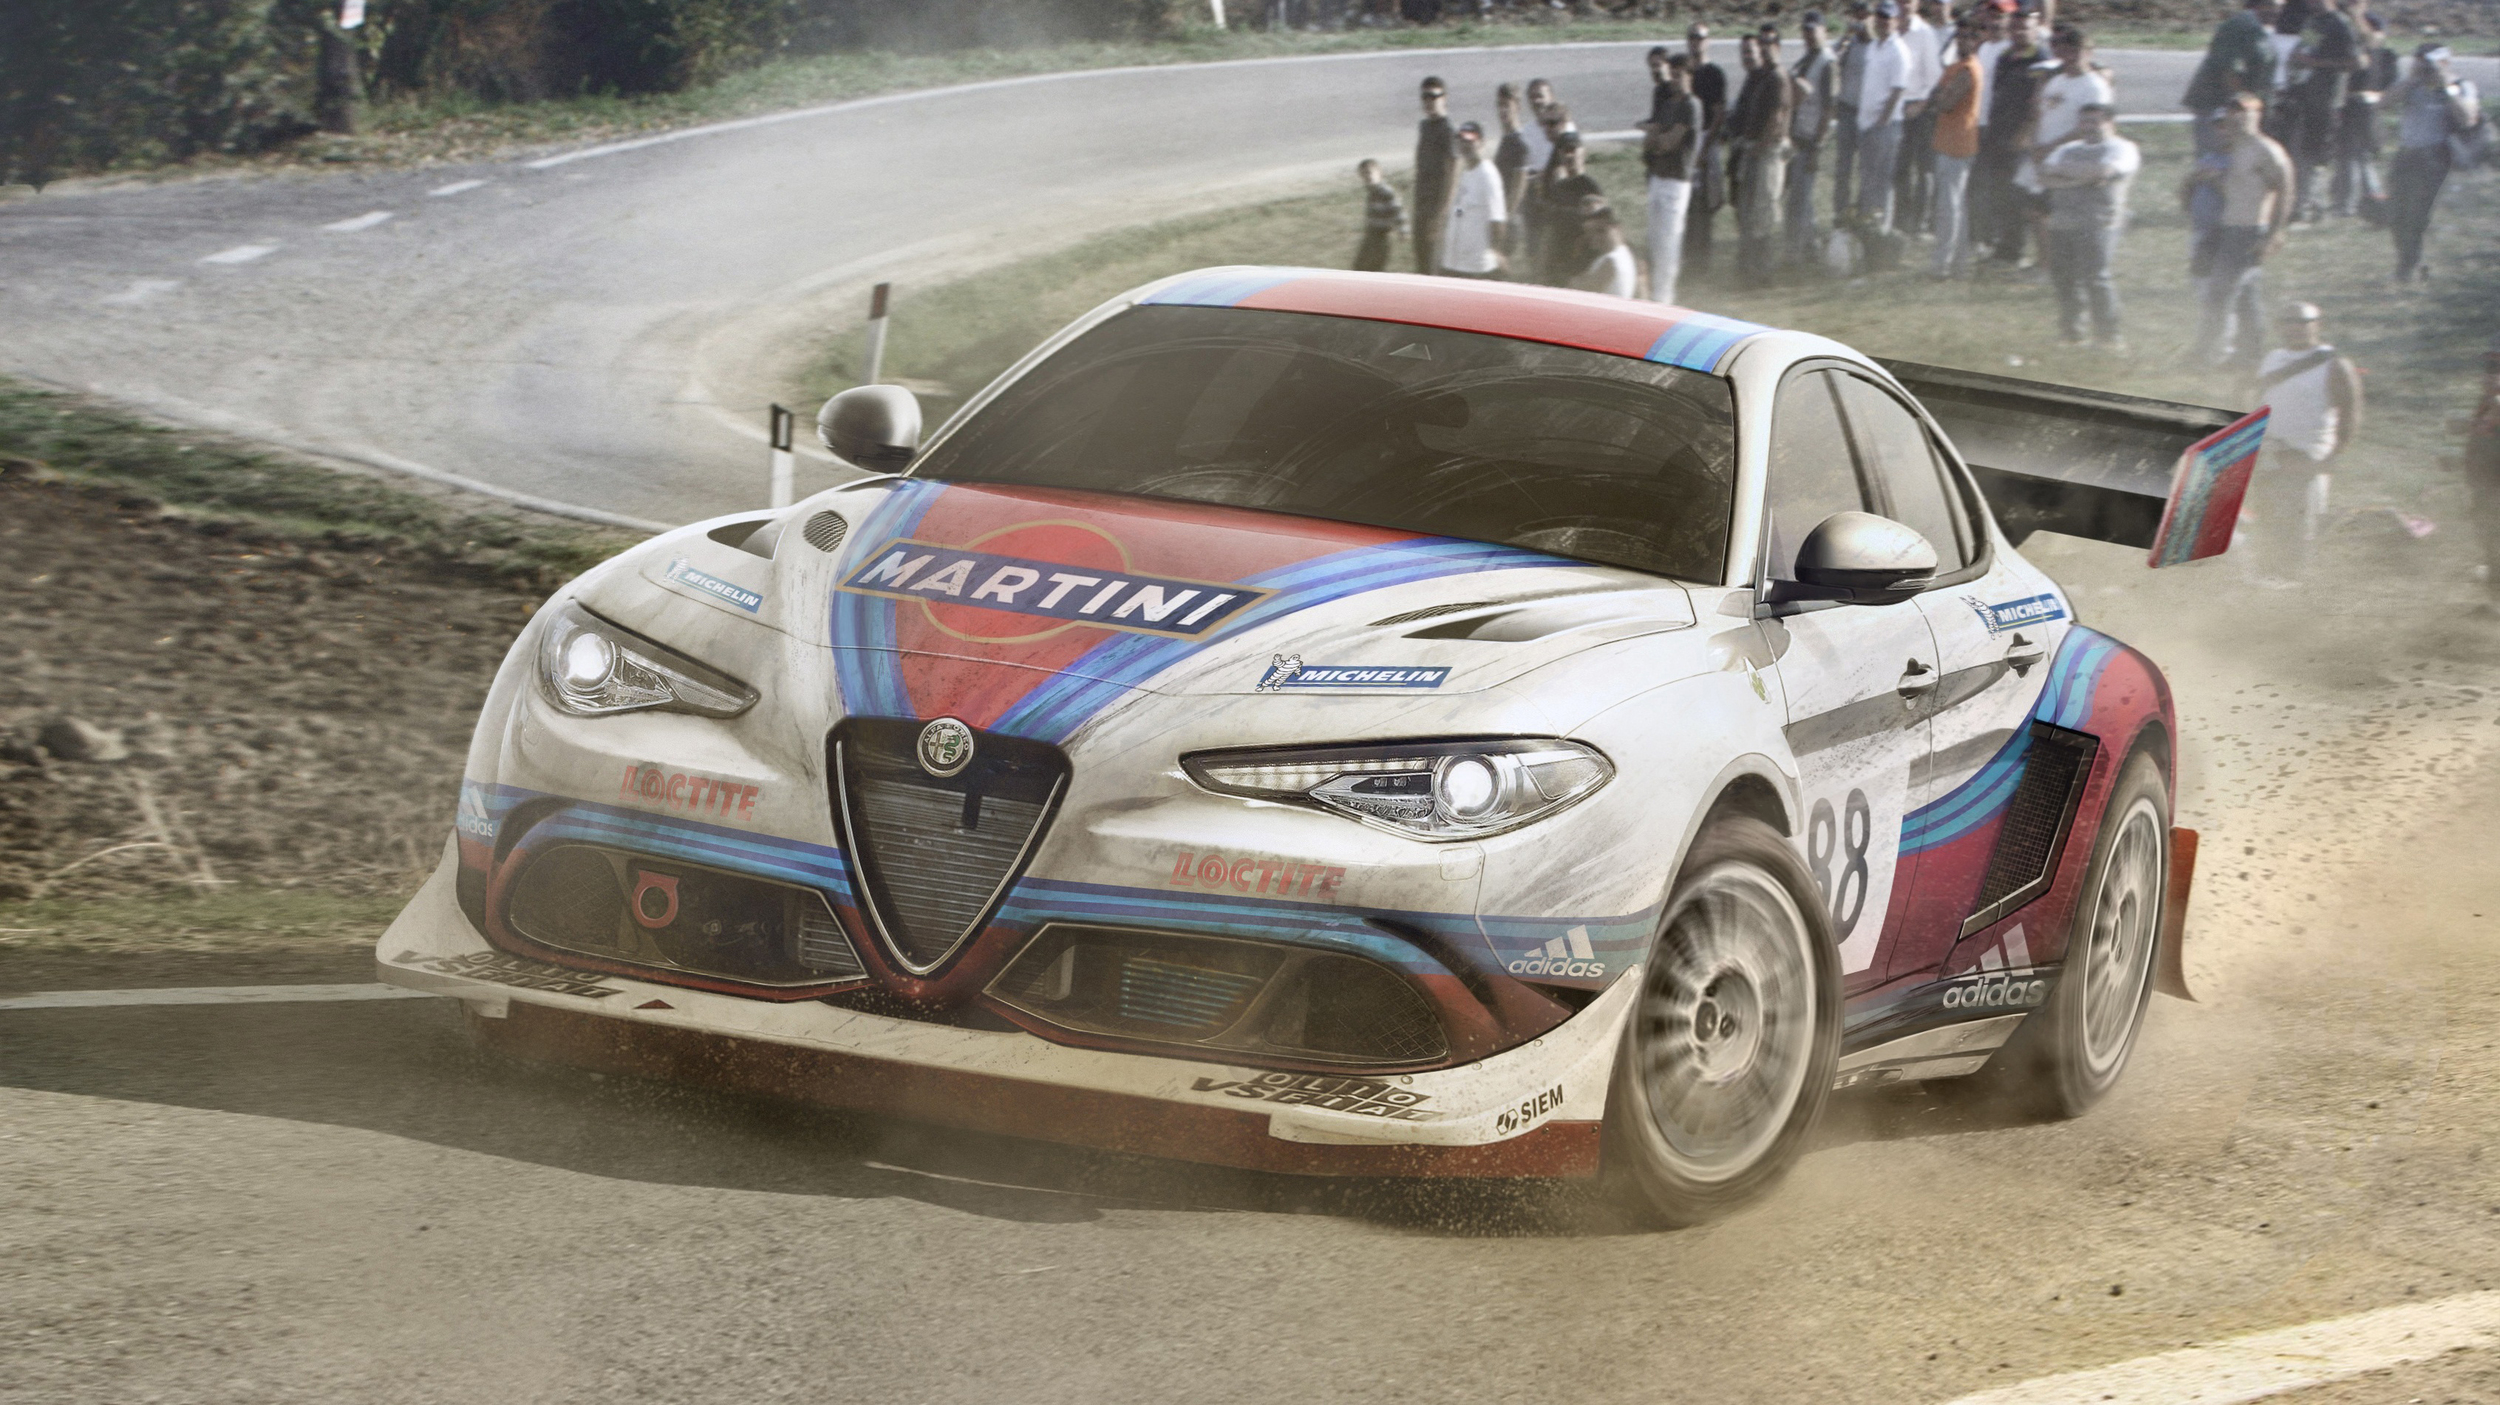 Modern Rally Car Renders Photo Gallery - Autoblog